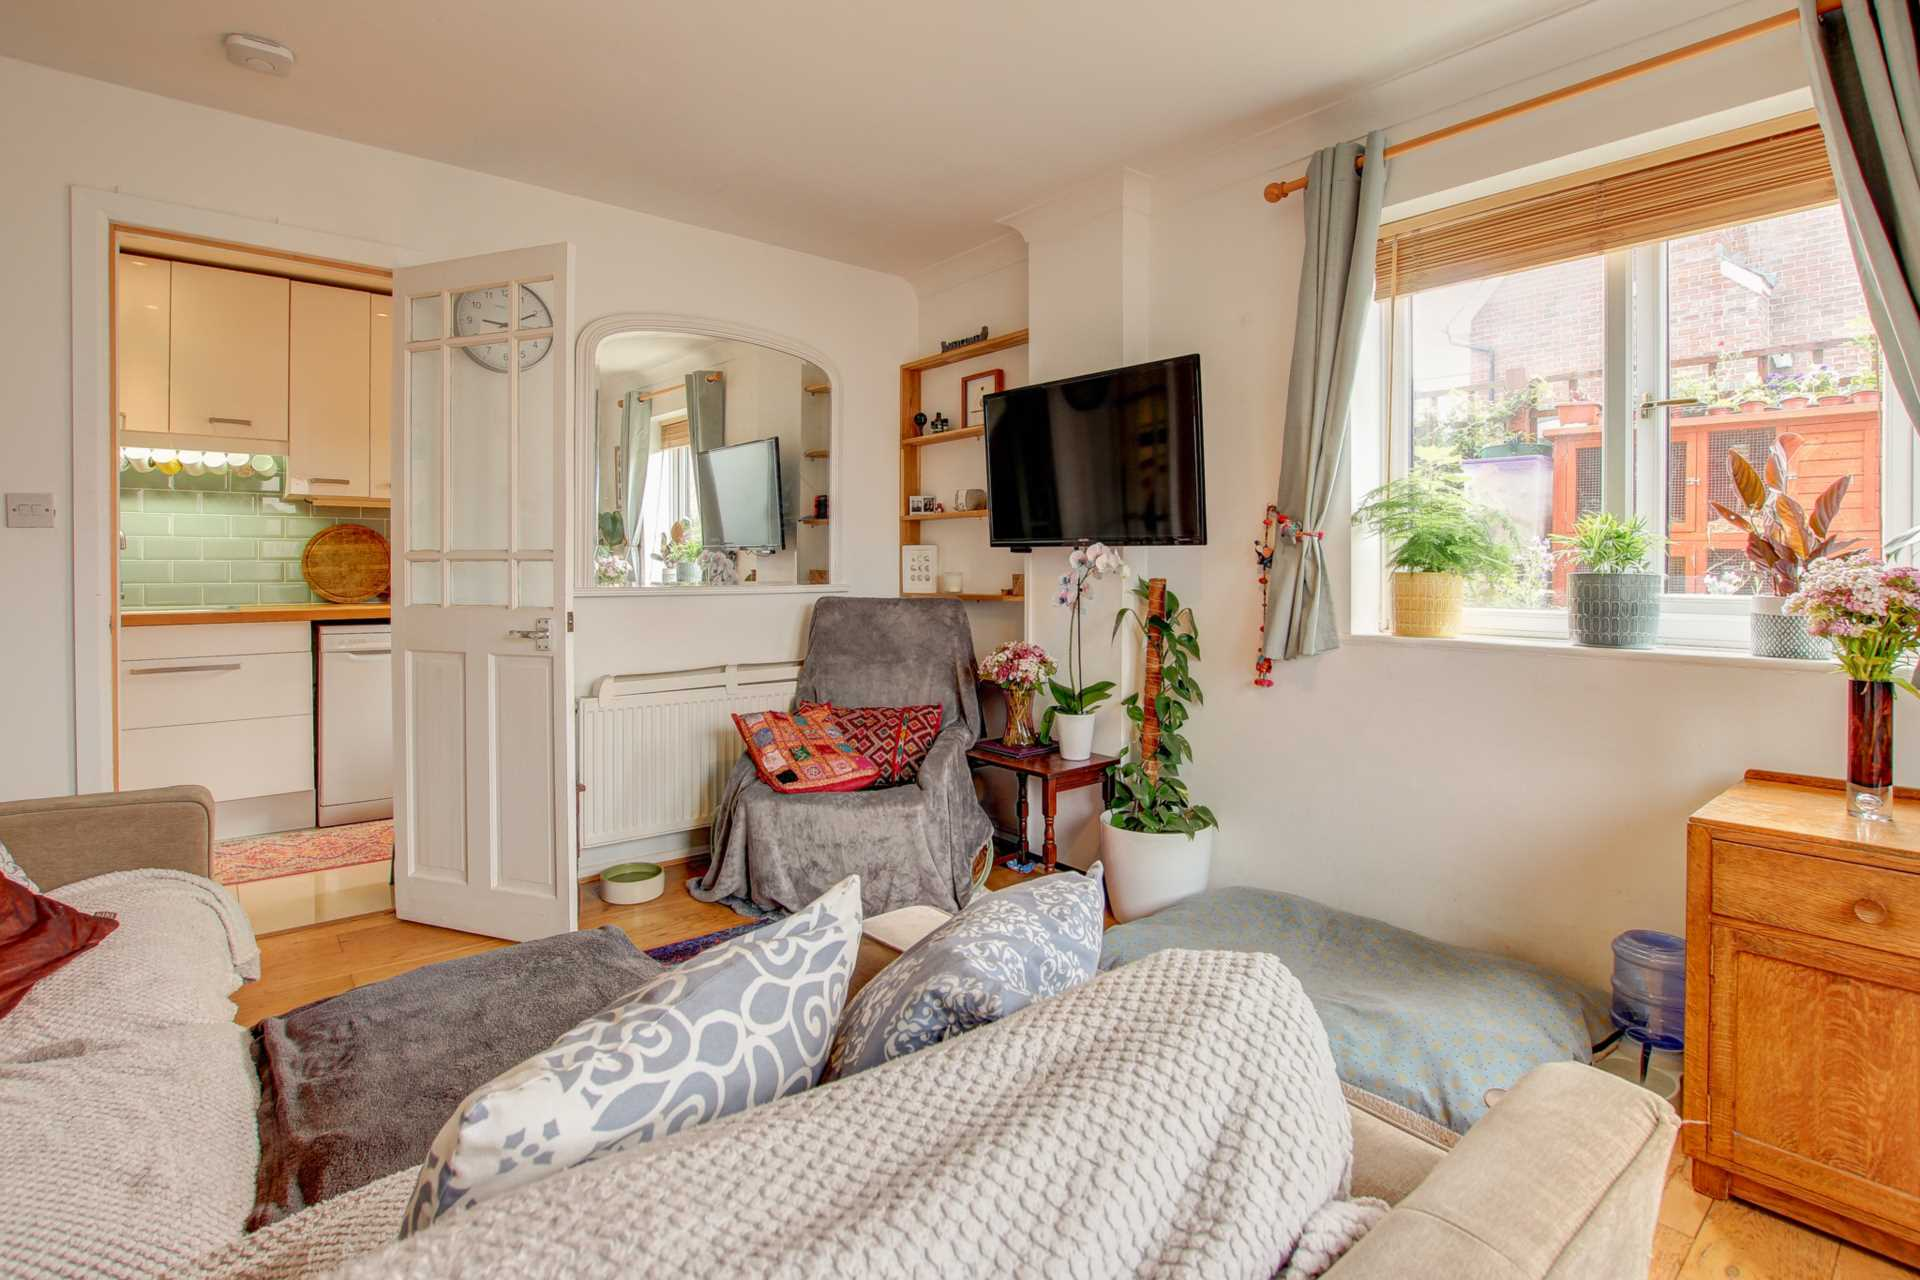 2 bed end of terrace house for sale in The Mews, Shorts Lane, Blandford Forum, Blandford Forum  - Property Image 11